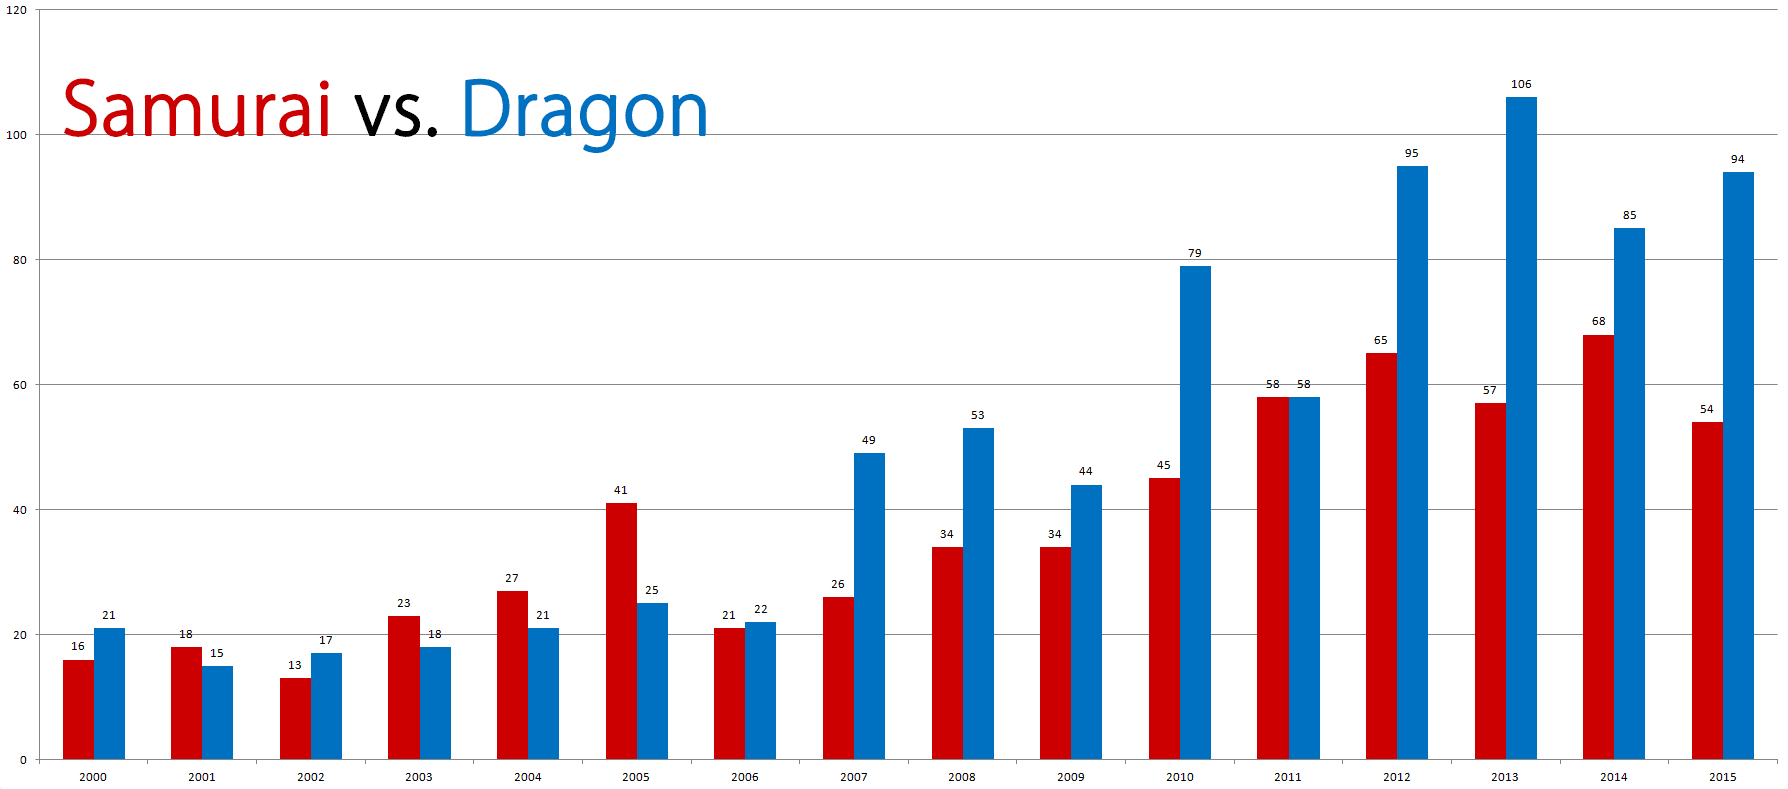 uses of the word 'dragon' in titles of books about China compared with uses of the word 'samurai' in titles of books about Japan